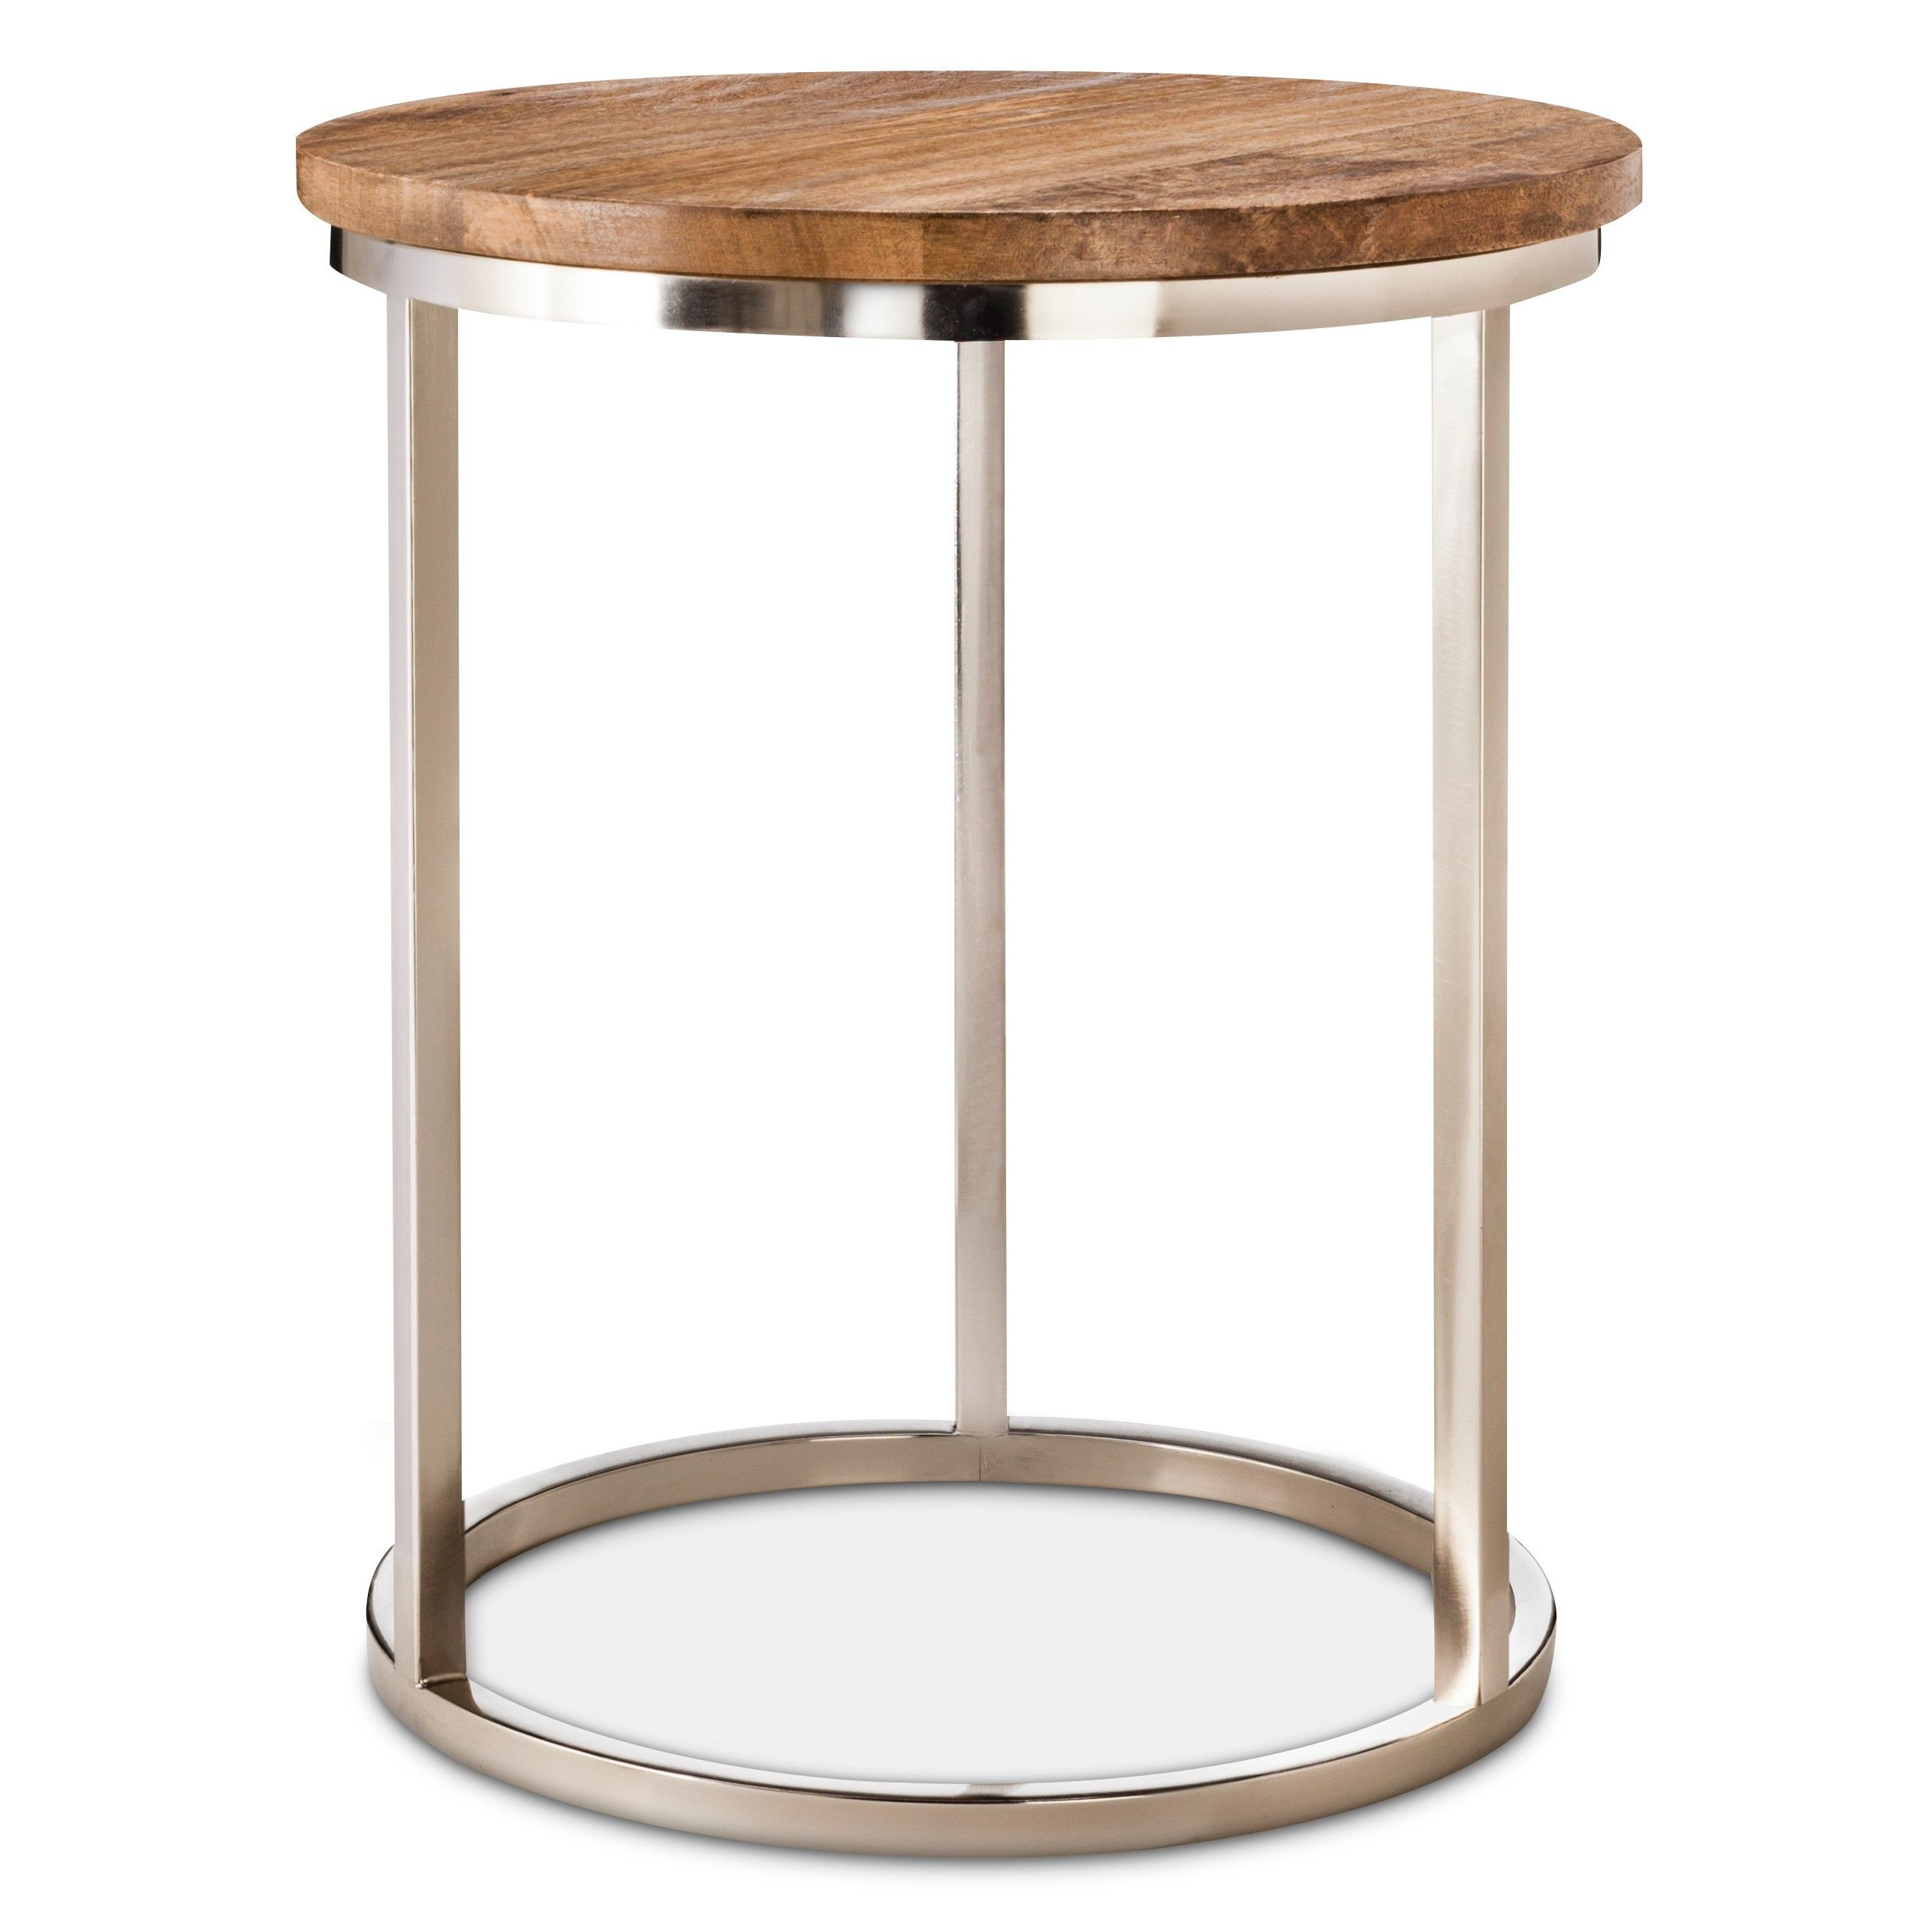 Threshold Metal Accent Table With Wood Top Metal Accent Table Accent Table Wood Accent Table